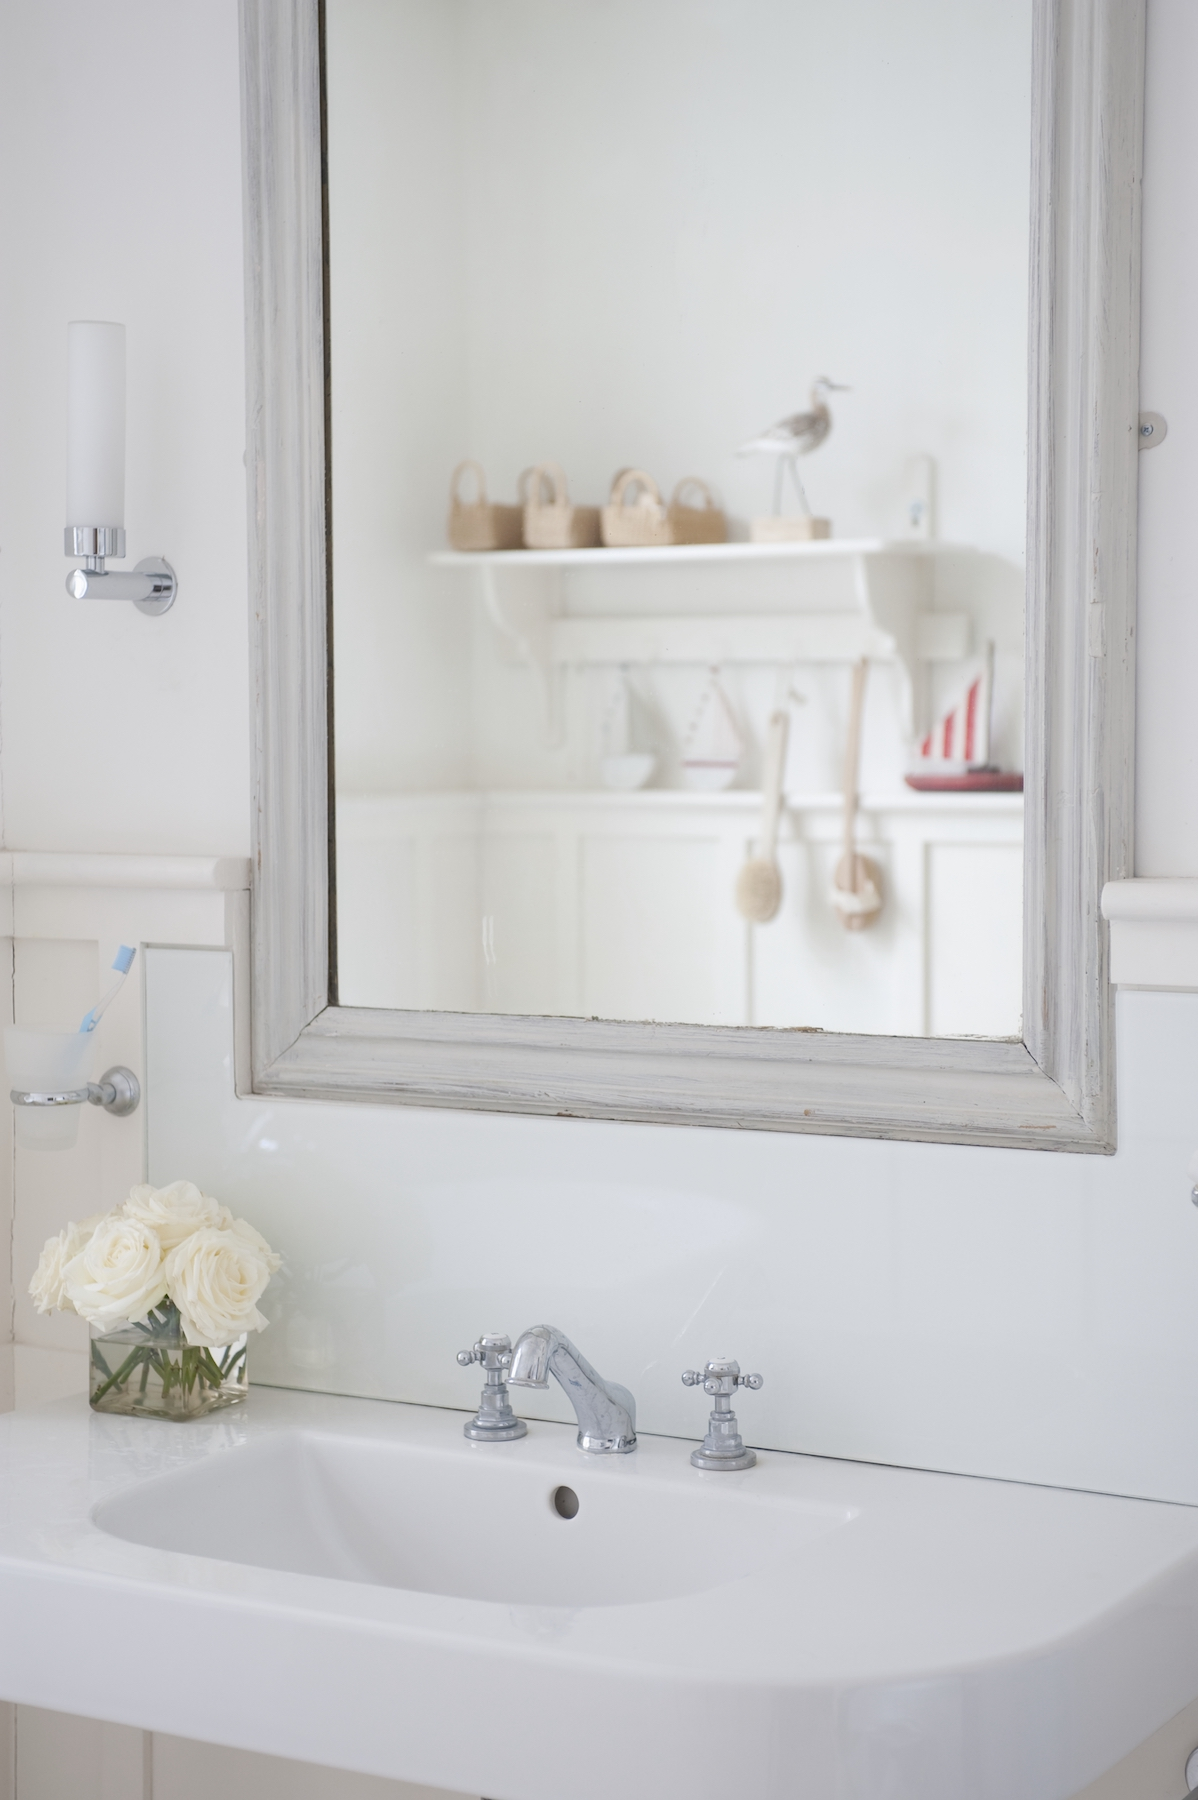 how to clean white kitchen sink clean your bathroom in 7 steps real simple 8591